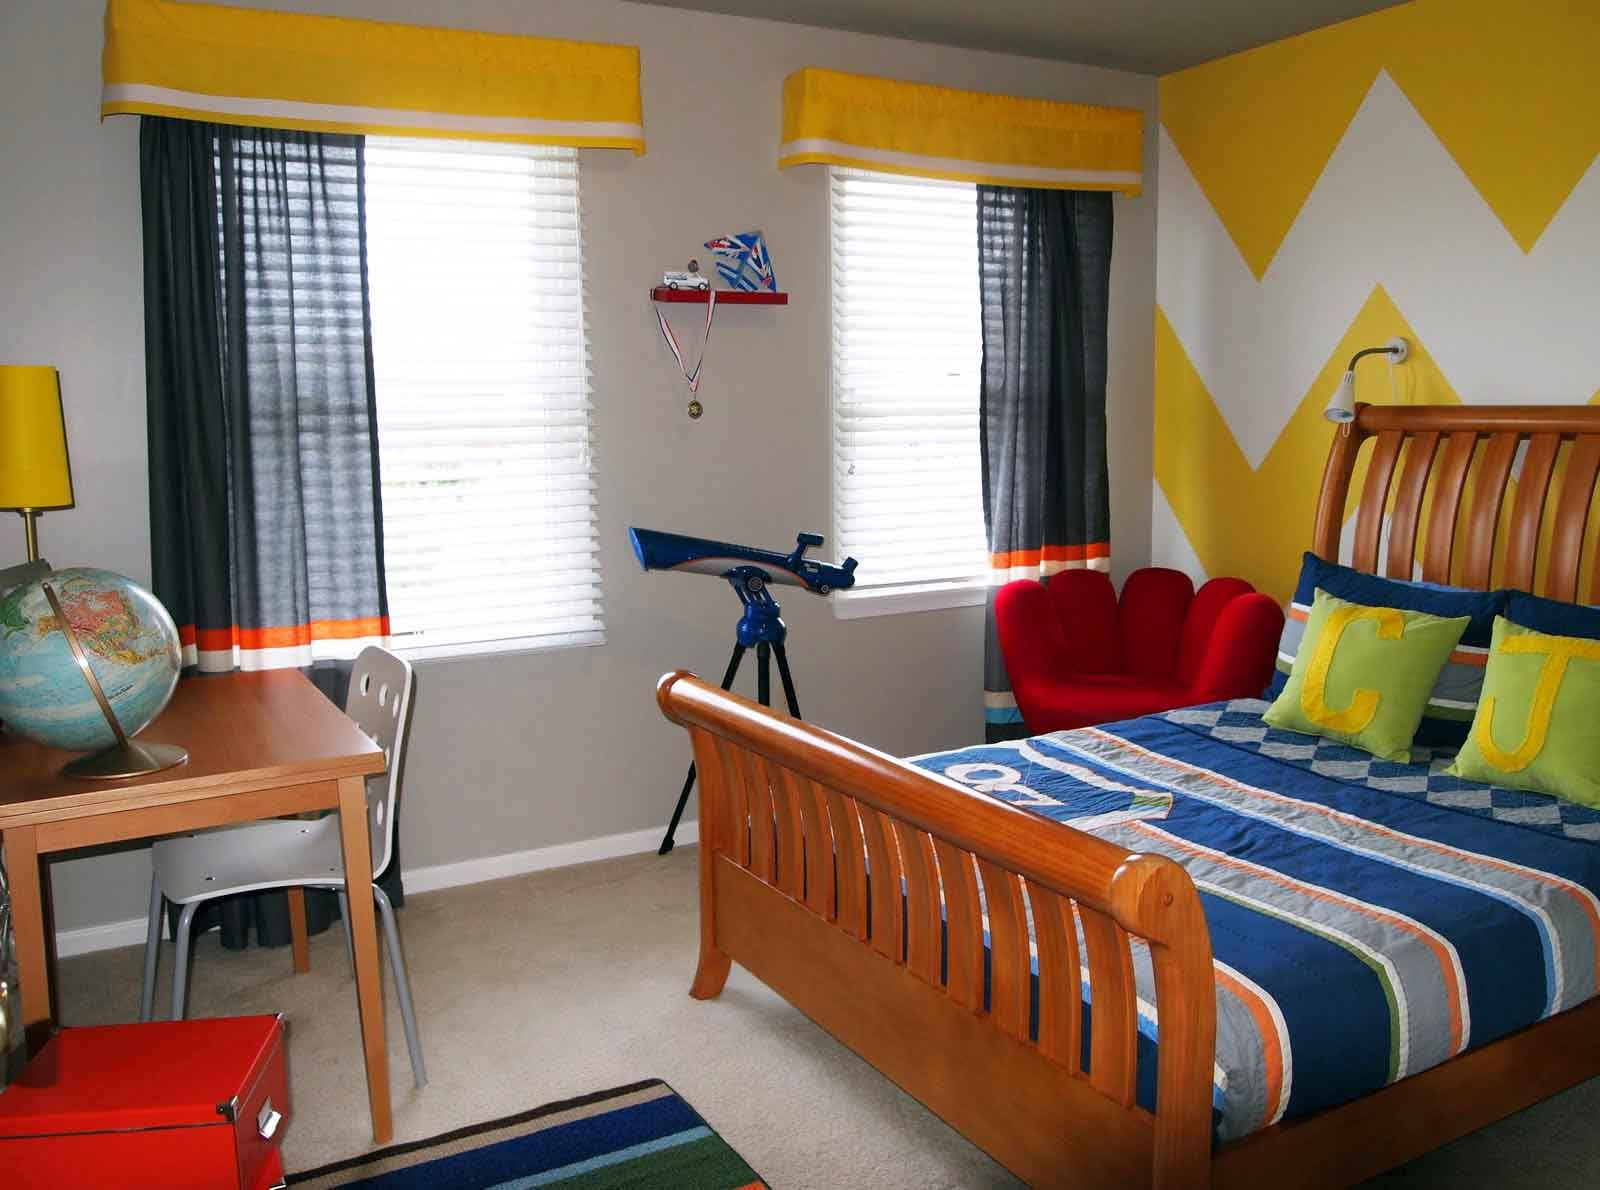 Kids Room Curtains Avoid Plain Colored Window Treatments